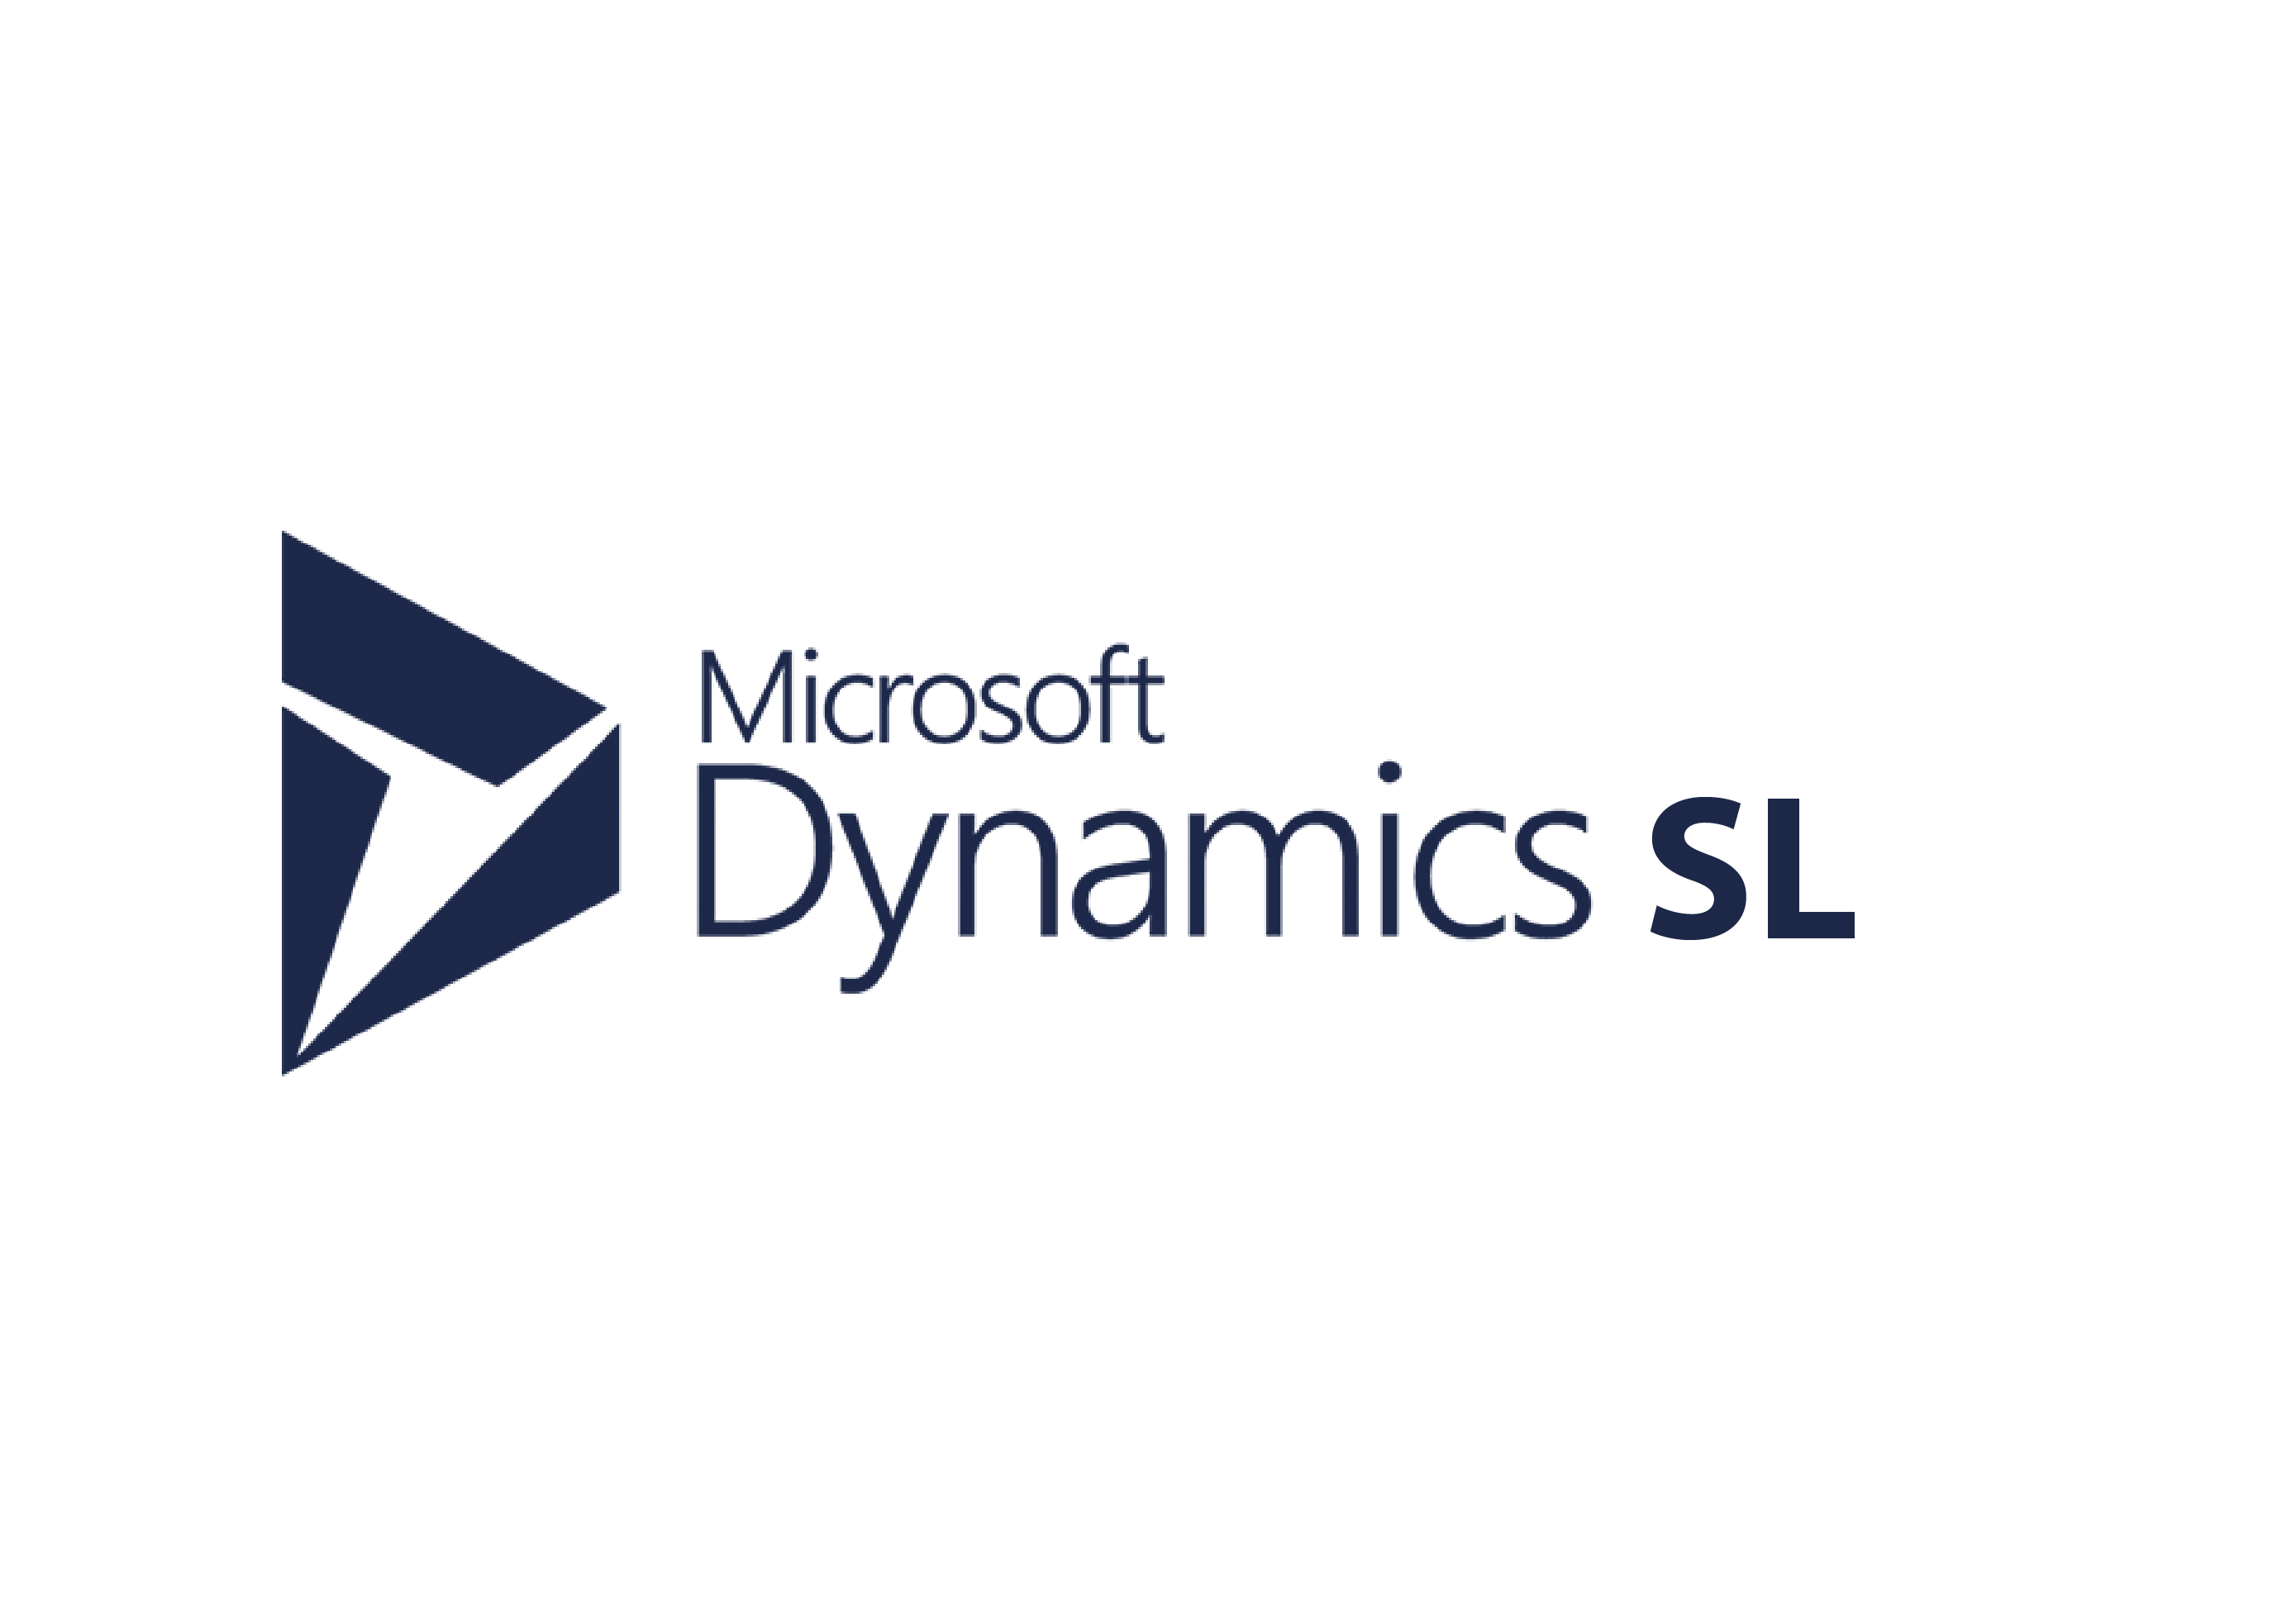 microsoft dynamics sl payment processing